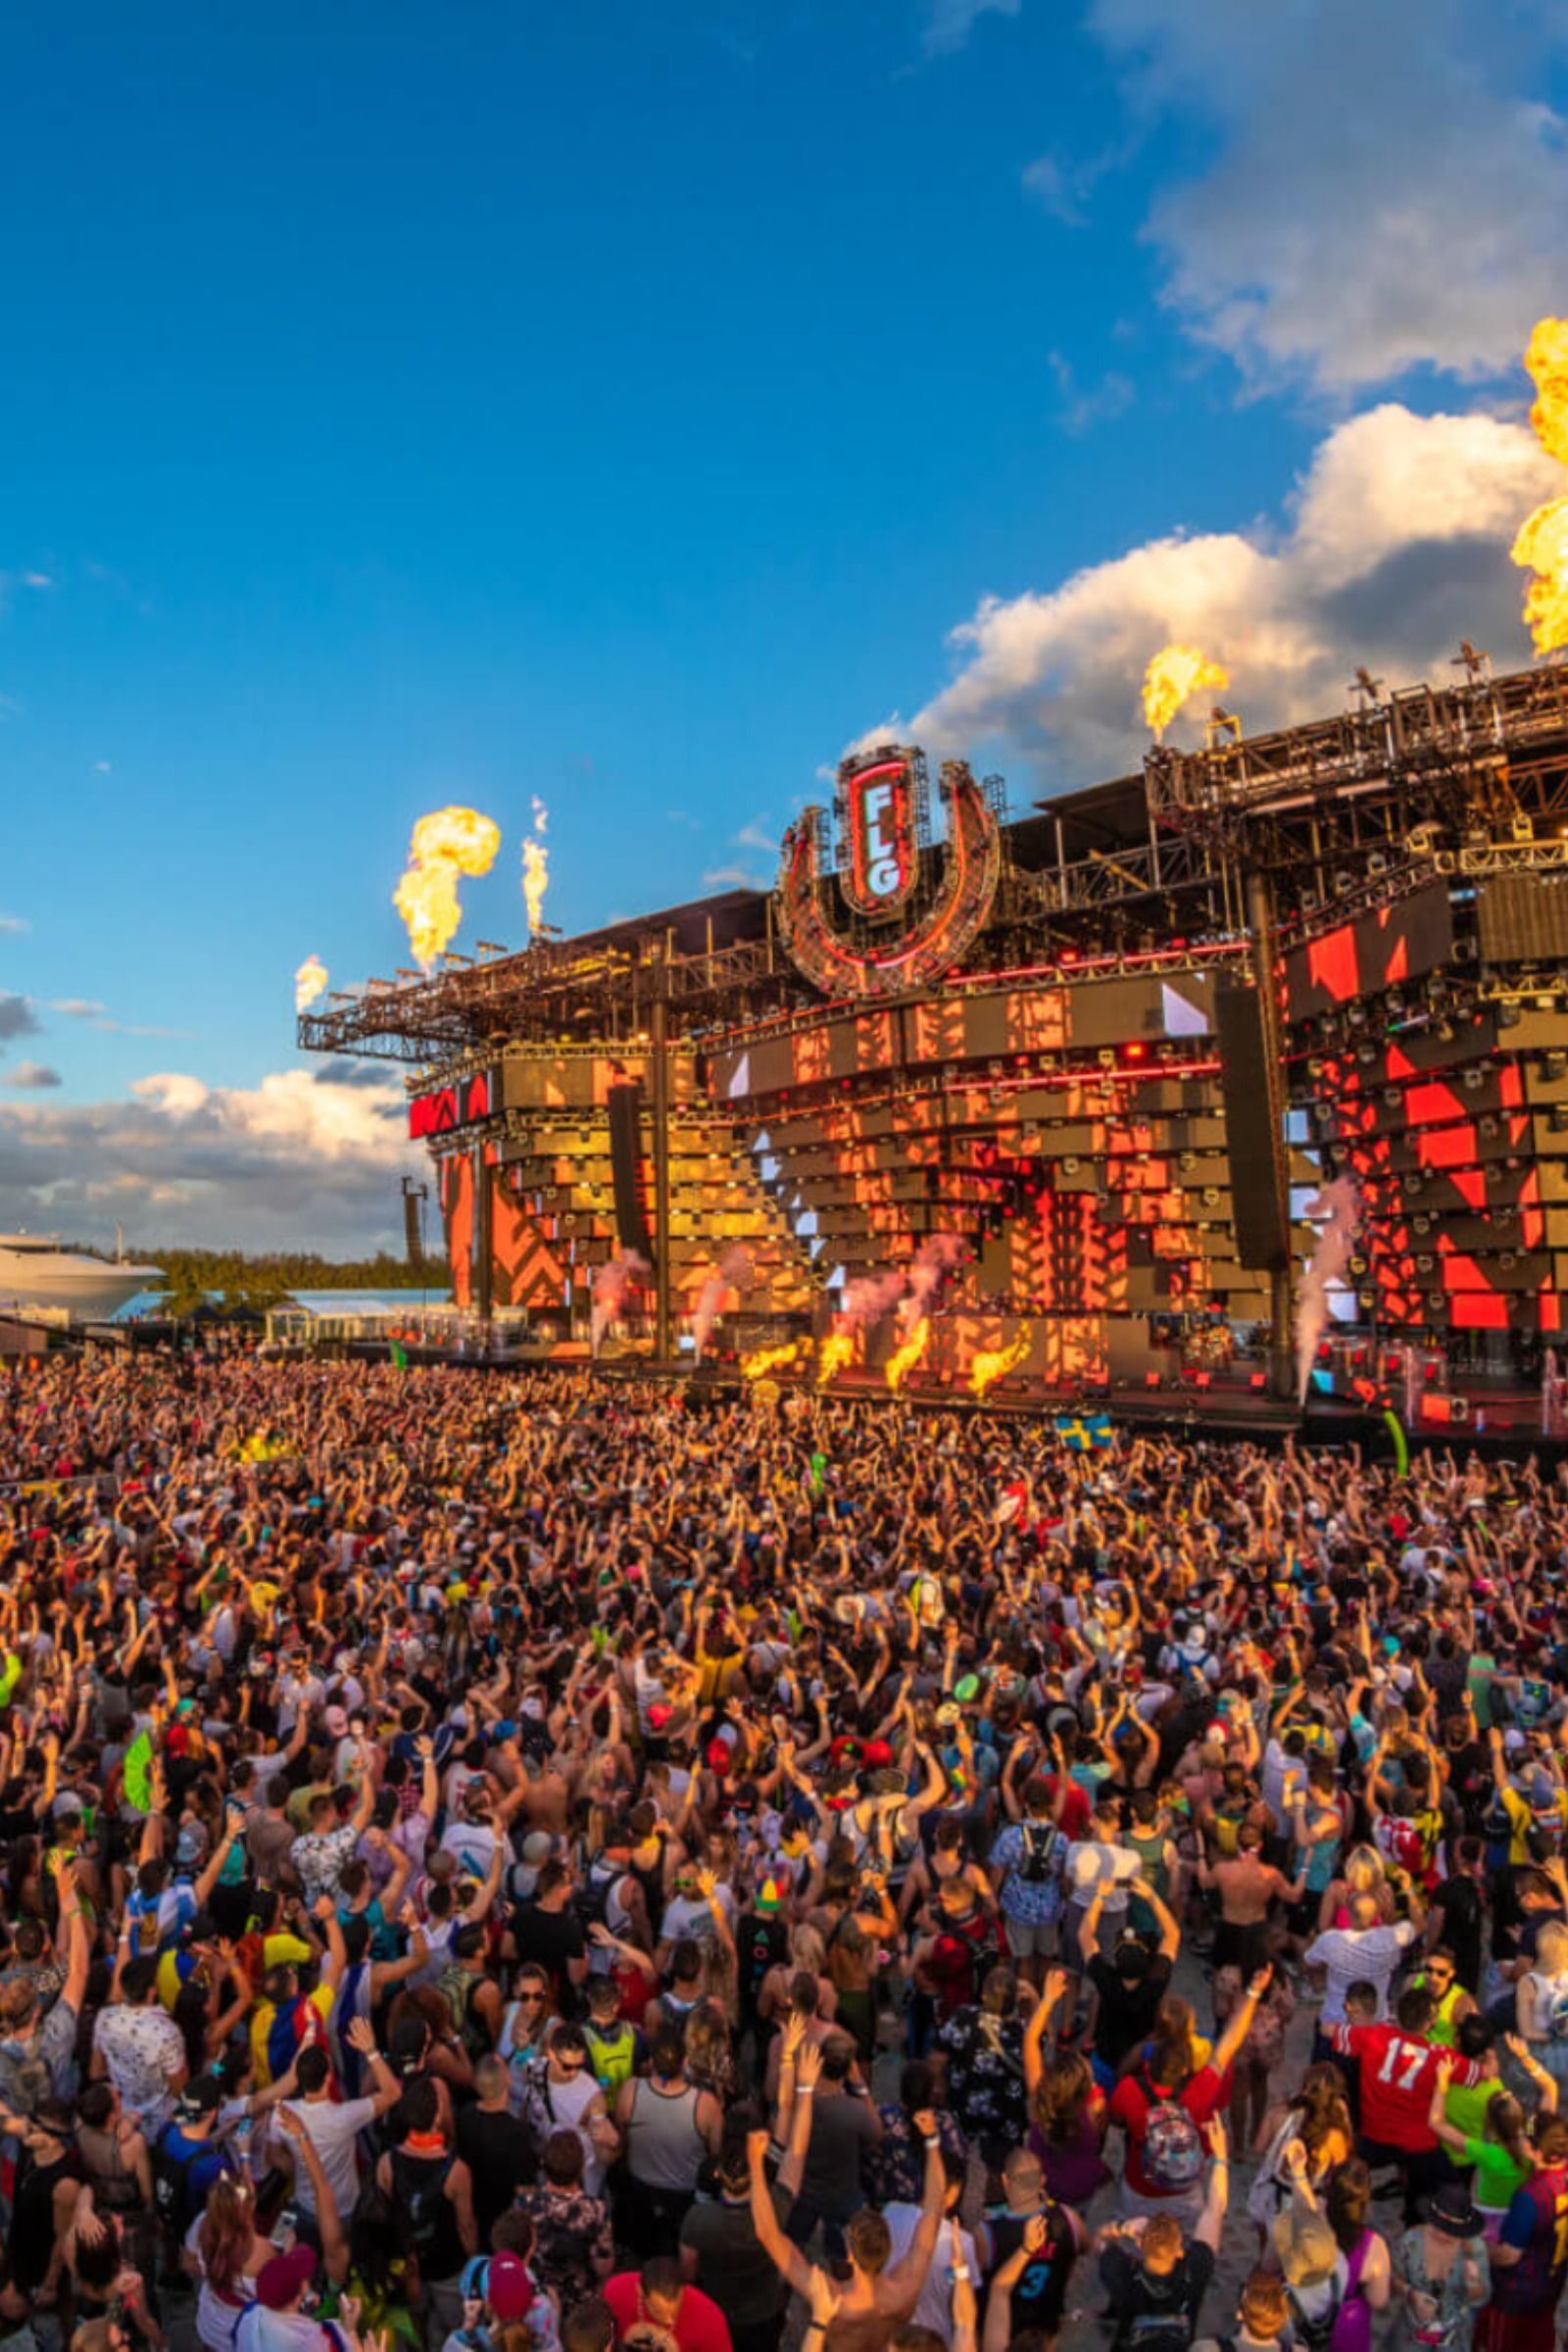 [BREAKING] Miami's Ultra Music Festival Cancelled in 2020